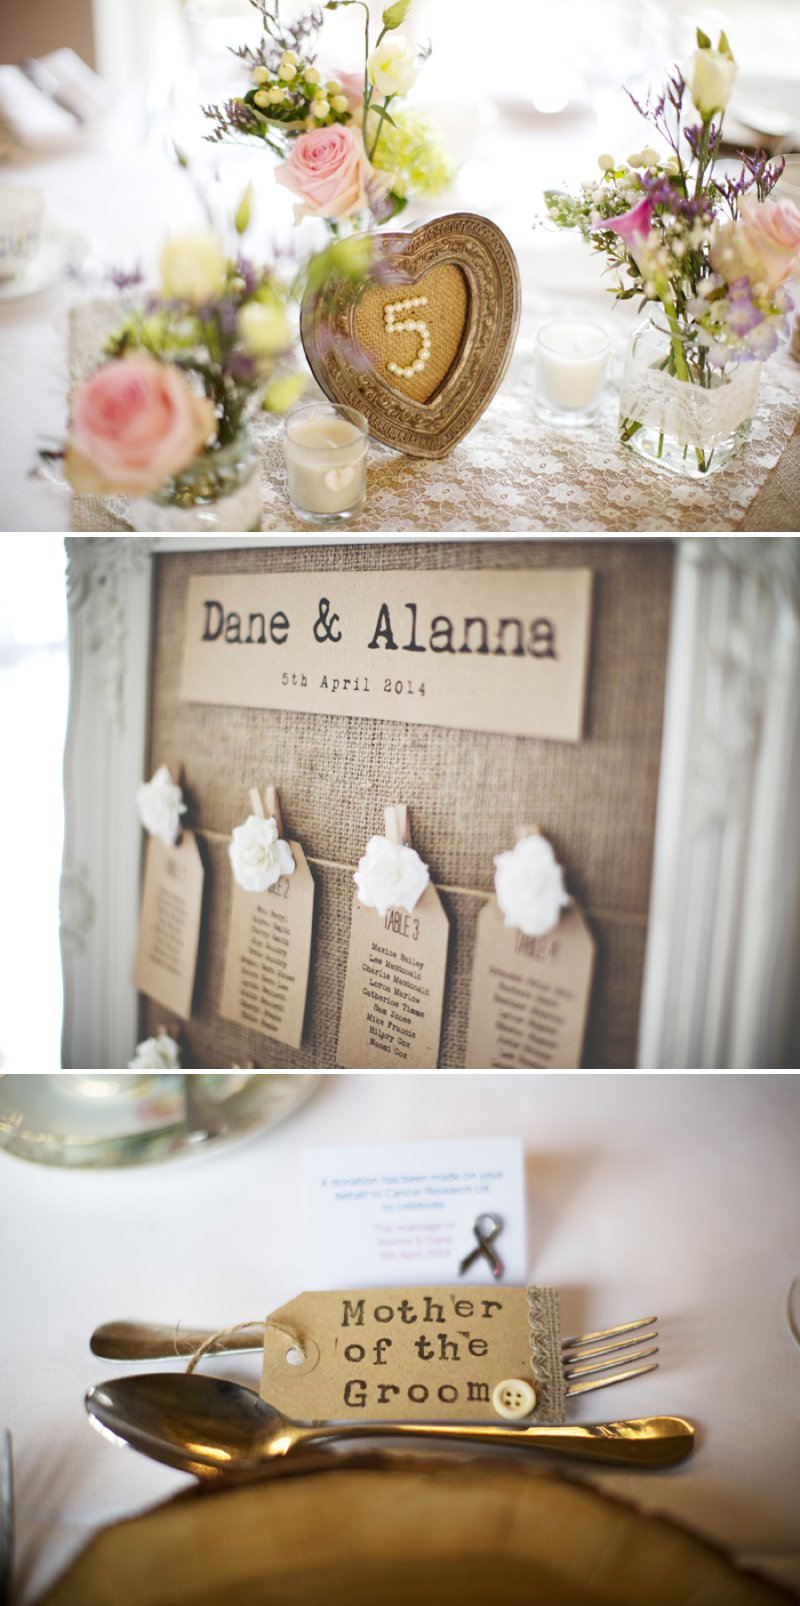 Rustic Wedding At Hyde Barn In Stow On The Wold With A Pale Pink Colour Scheme And Bride In Samantha By Sassi Holford With Bridesmaids In Pale Pink Twobirds Dresses With Groom In Navy Reiss Suit 9